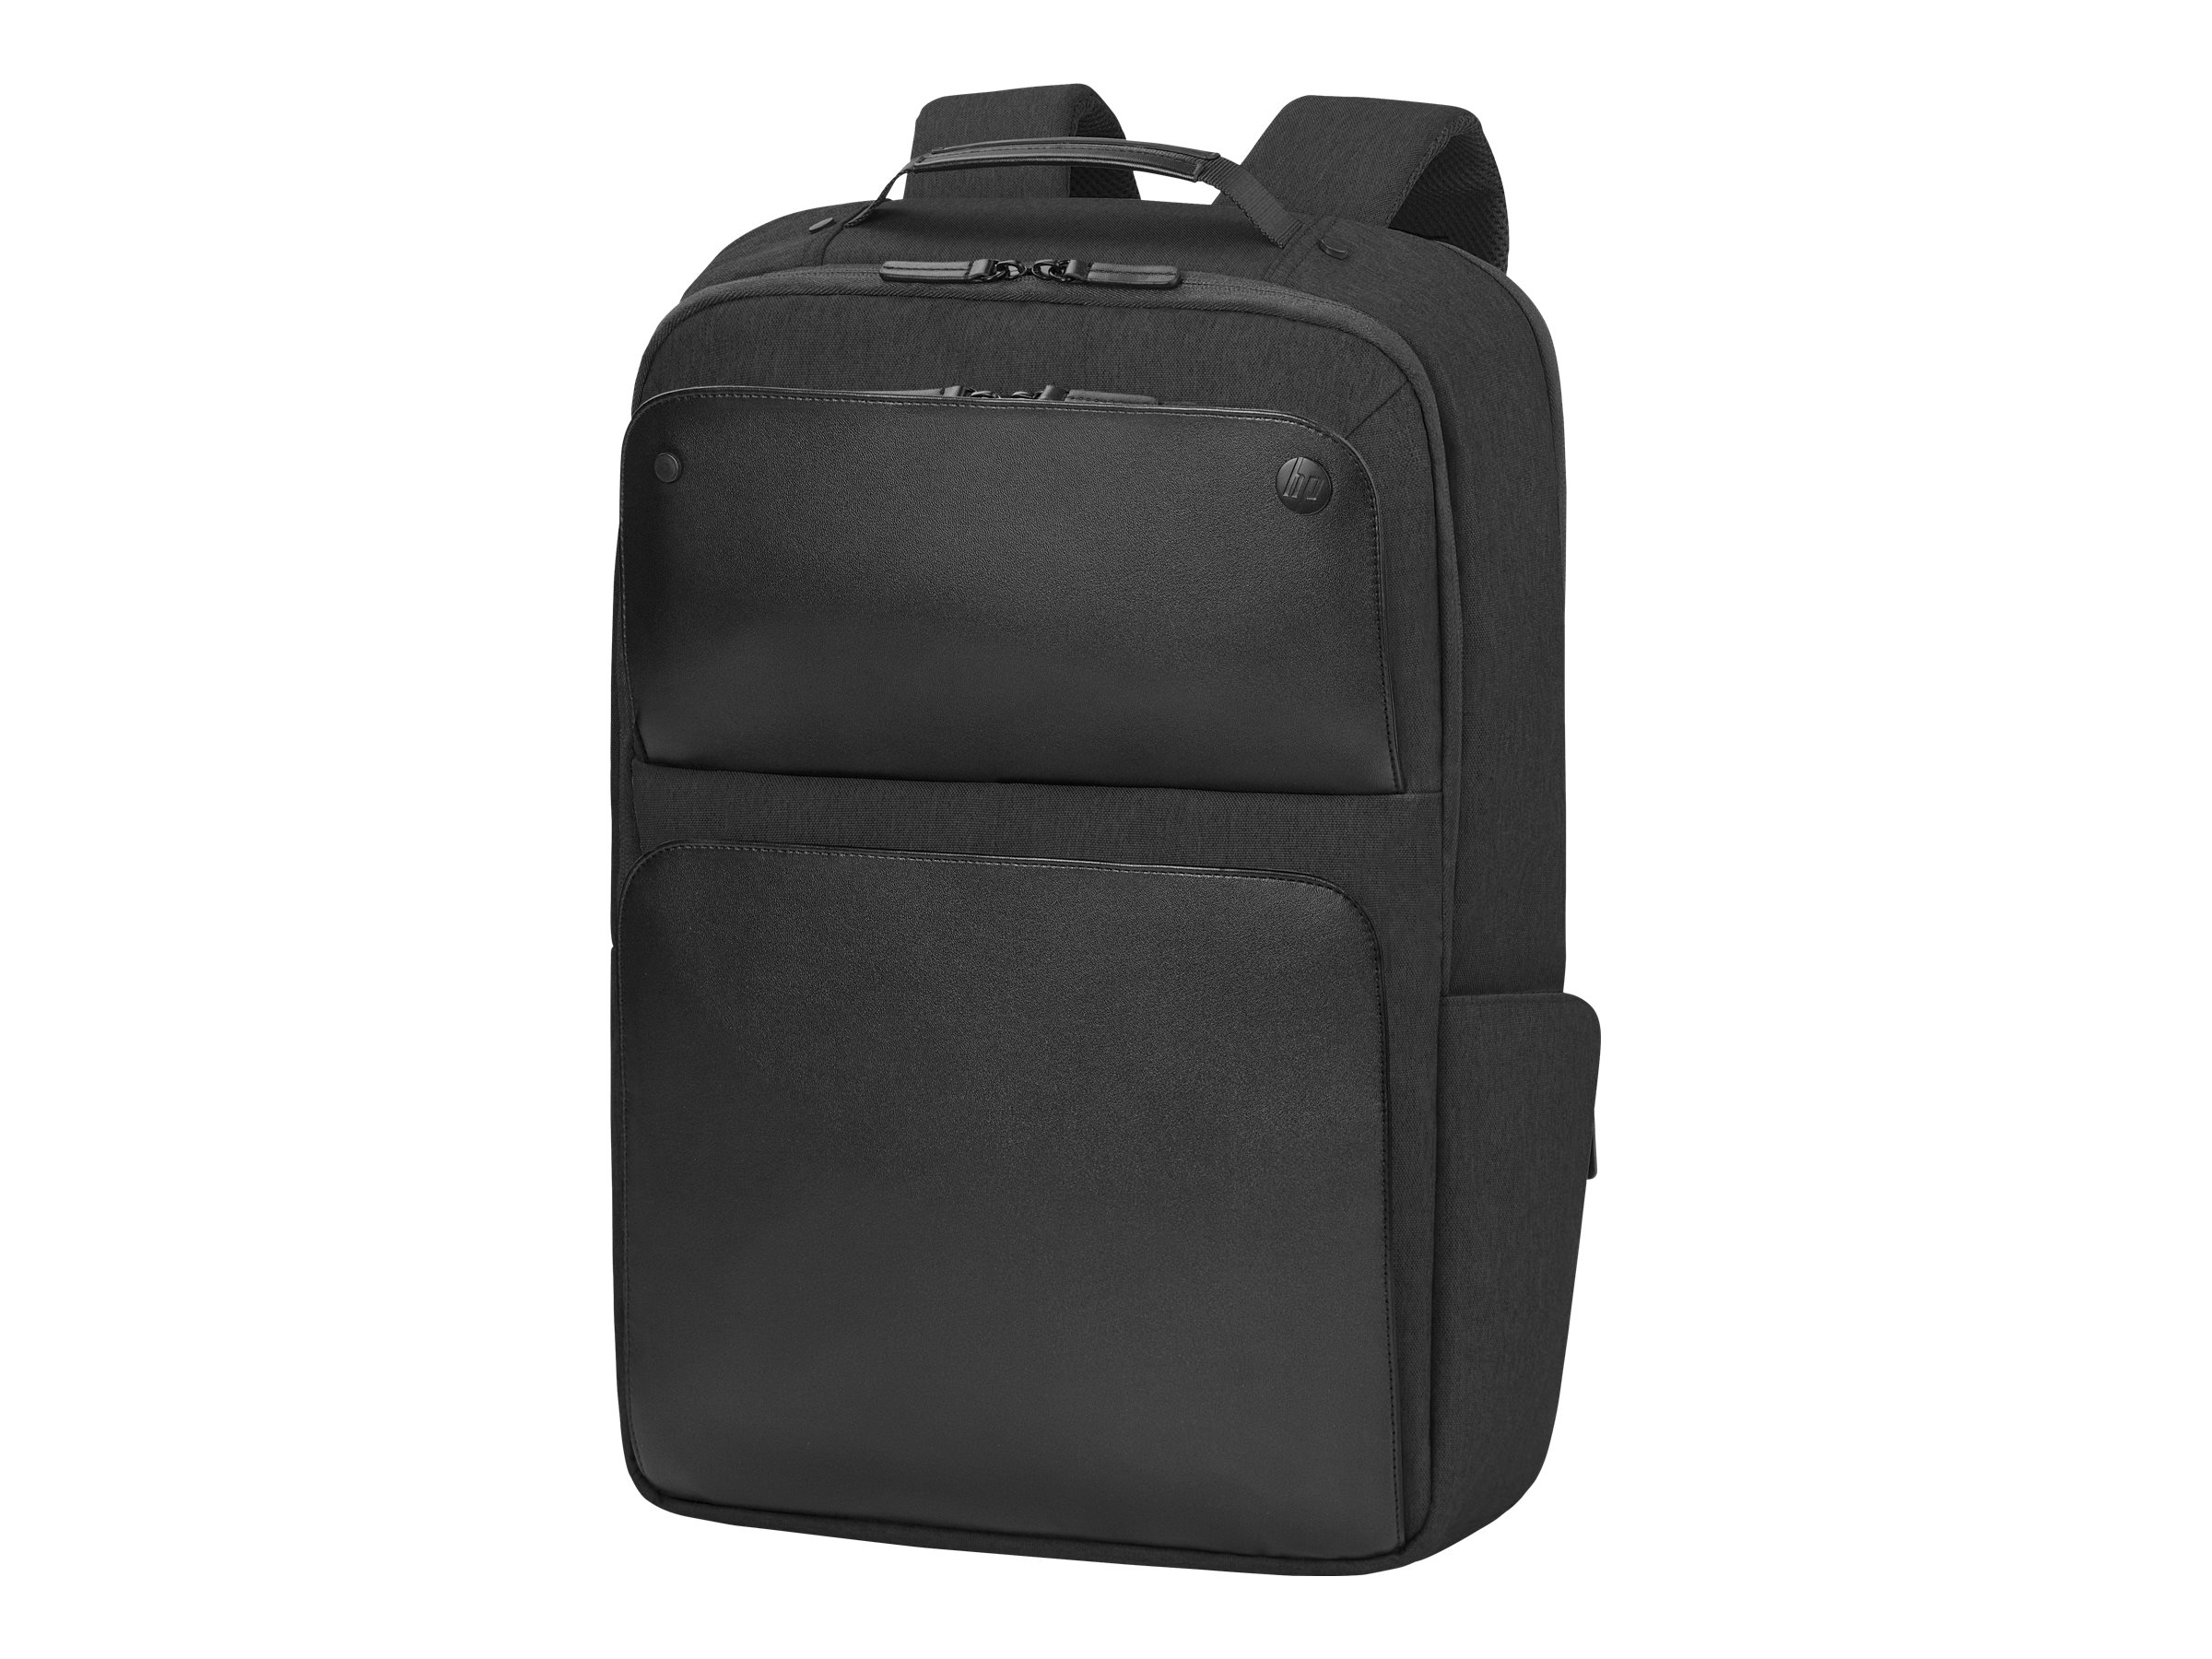 HP Executive Midnight Backpack - Notebook-Rucksack - 43.9 cm (17.3